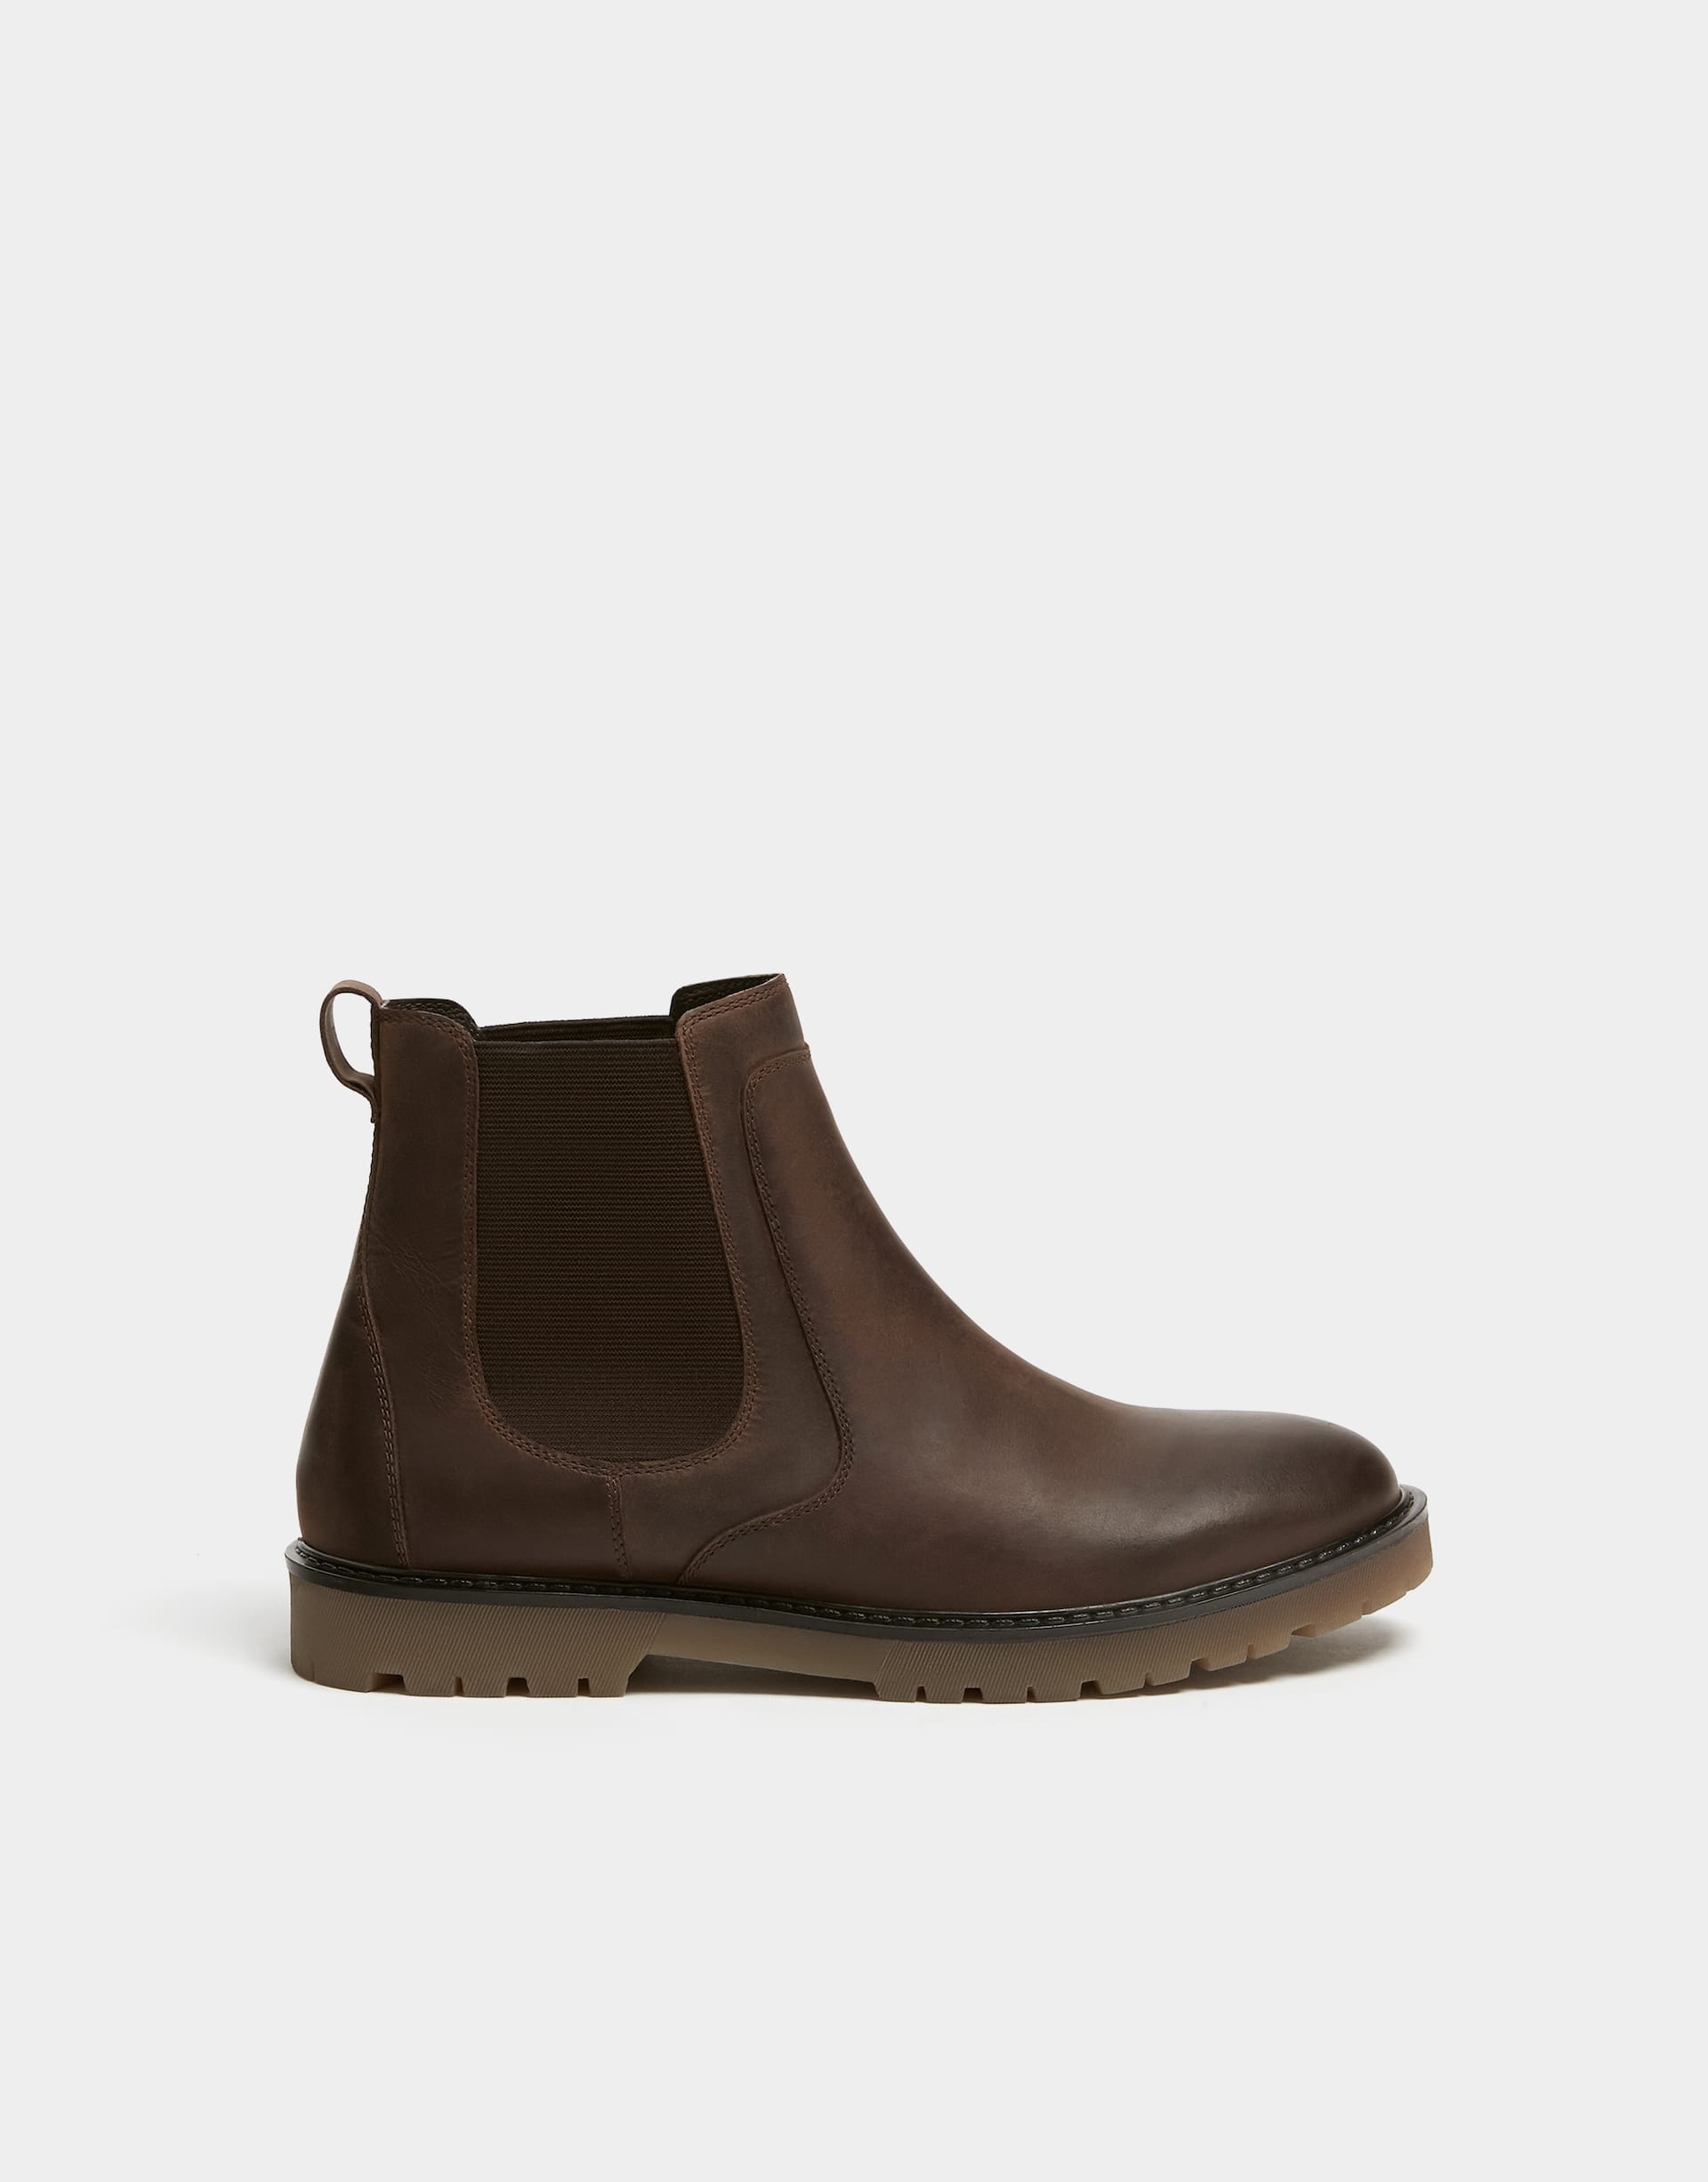 cca13a62fad Brown leather and elastic boots